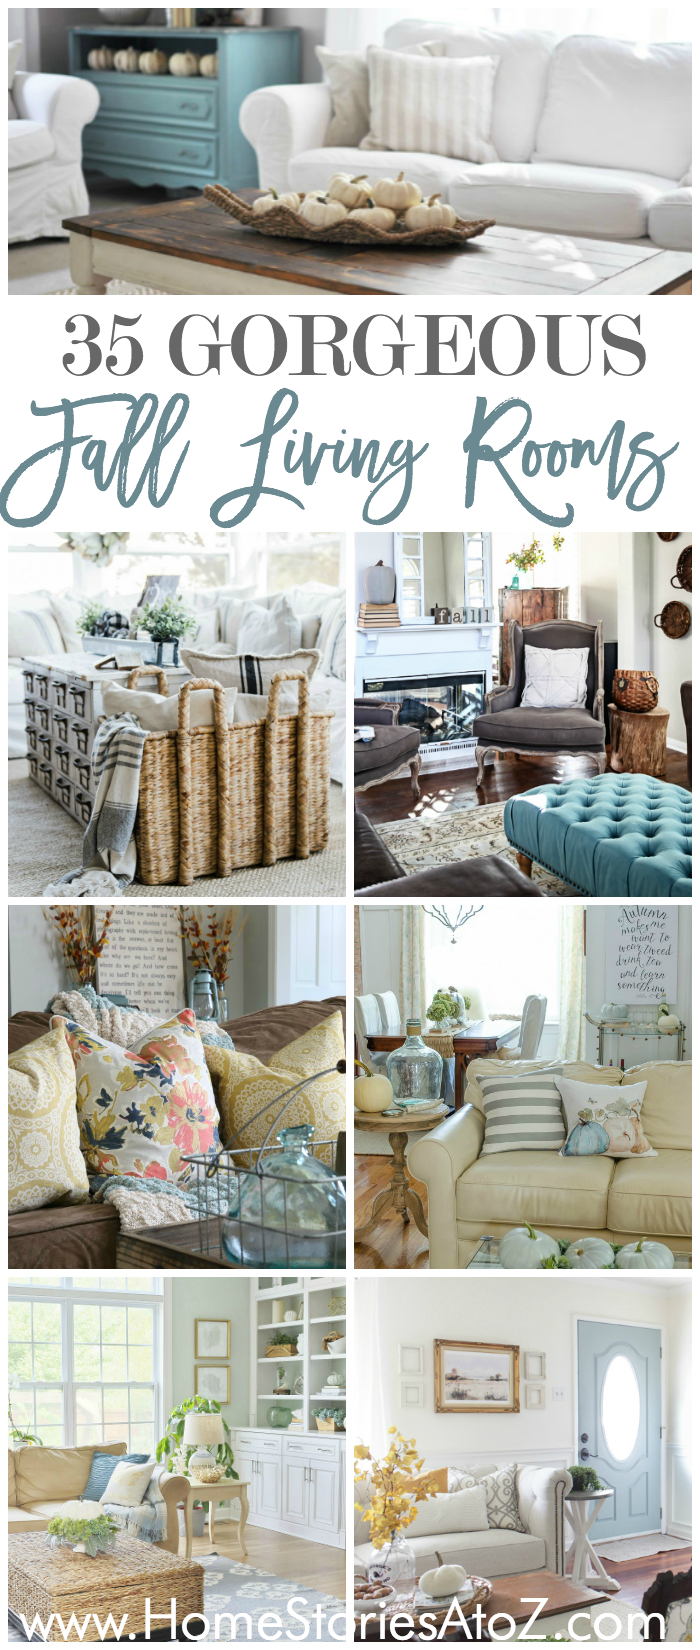 Transitioning Your Living Room Decor From Summer To Fall Doesnu0027t Require A  Complete Decorating Overhaul. See How These 35 Bloggers Decorate Their  Living ...